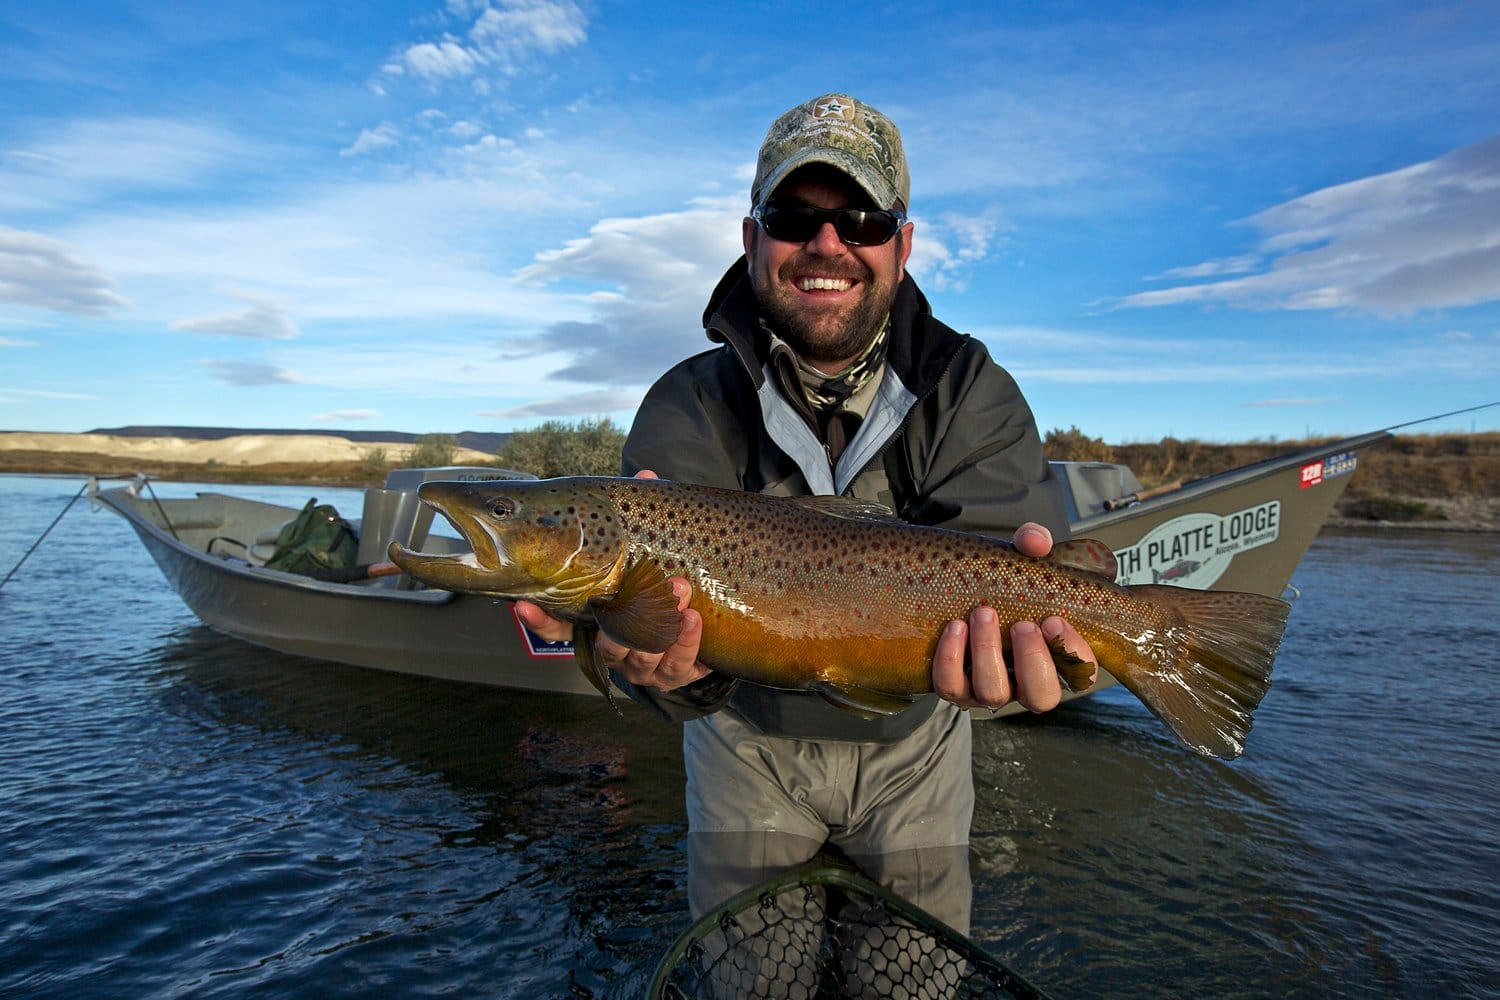 Grays reef fly fishing archives page 2 of 6 north for North platte fishing report